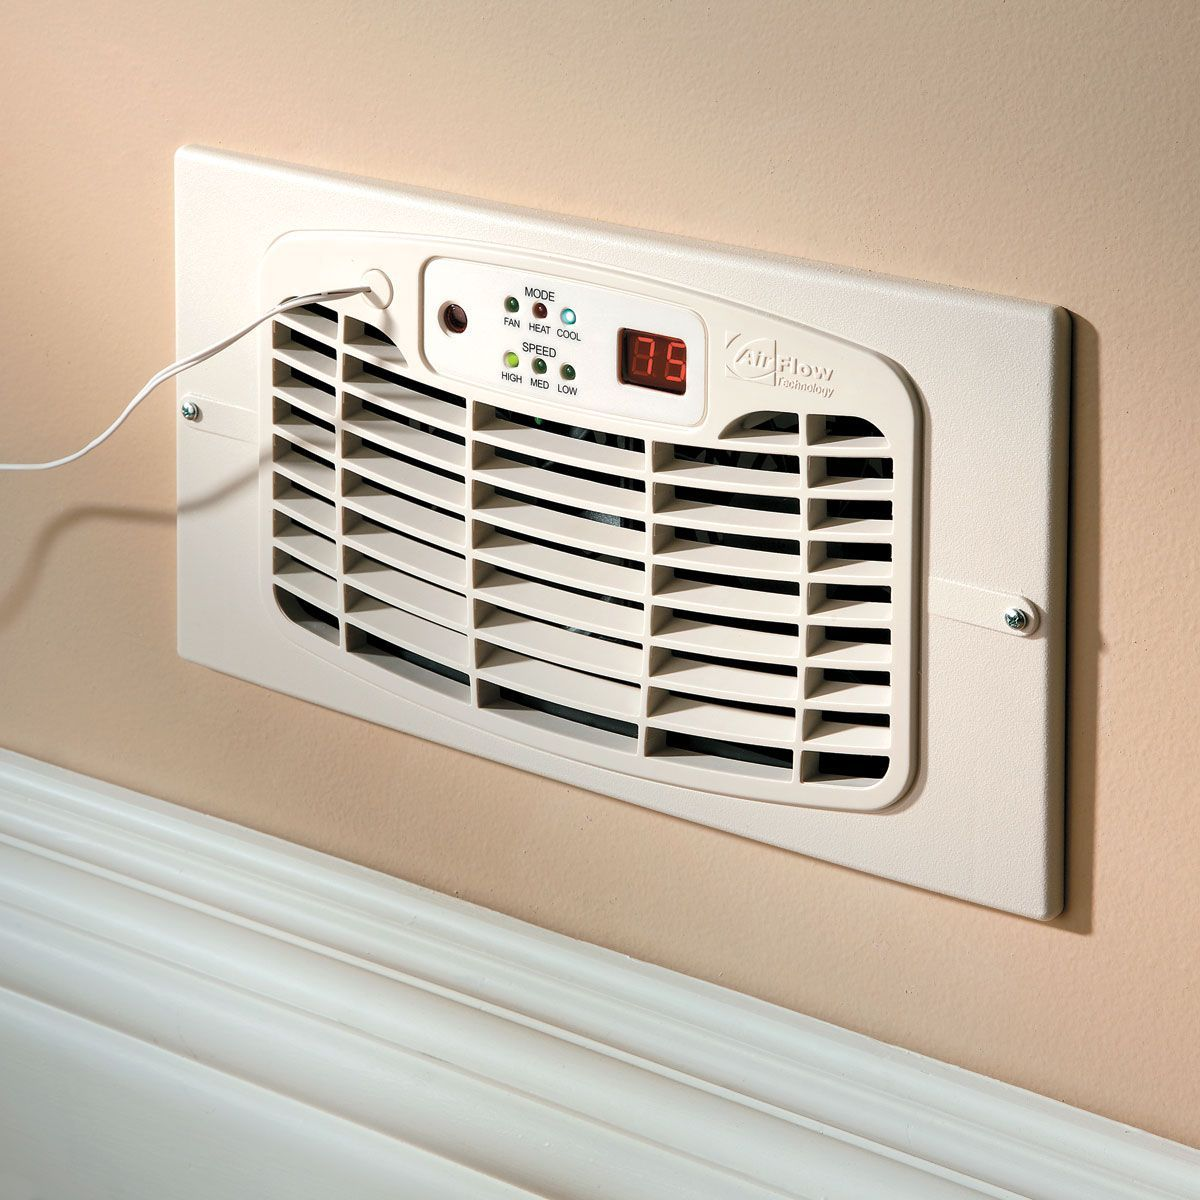 Room To Room Ventilation Fans : Airflow breeze ultra register booster fan laundry rooms